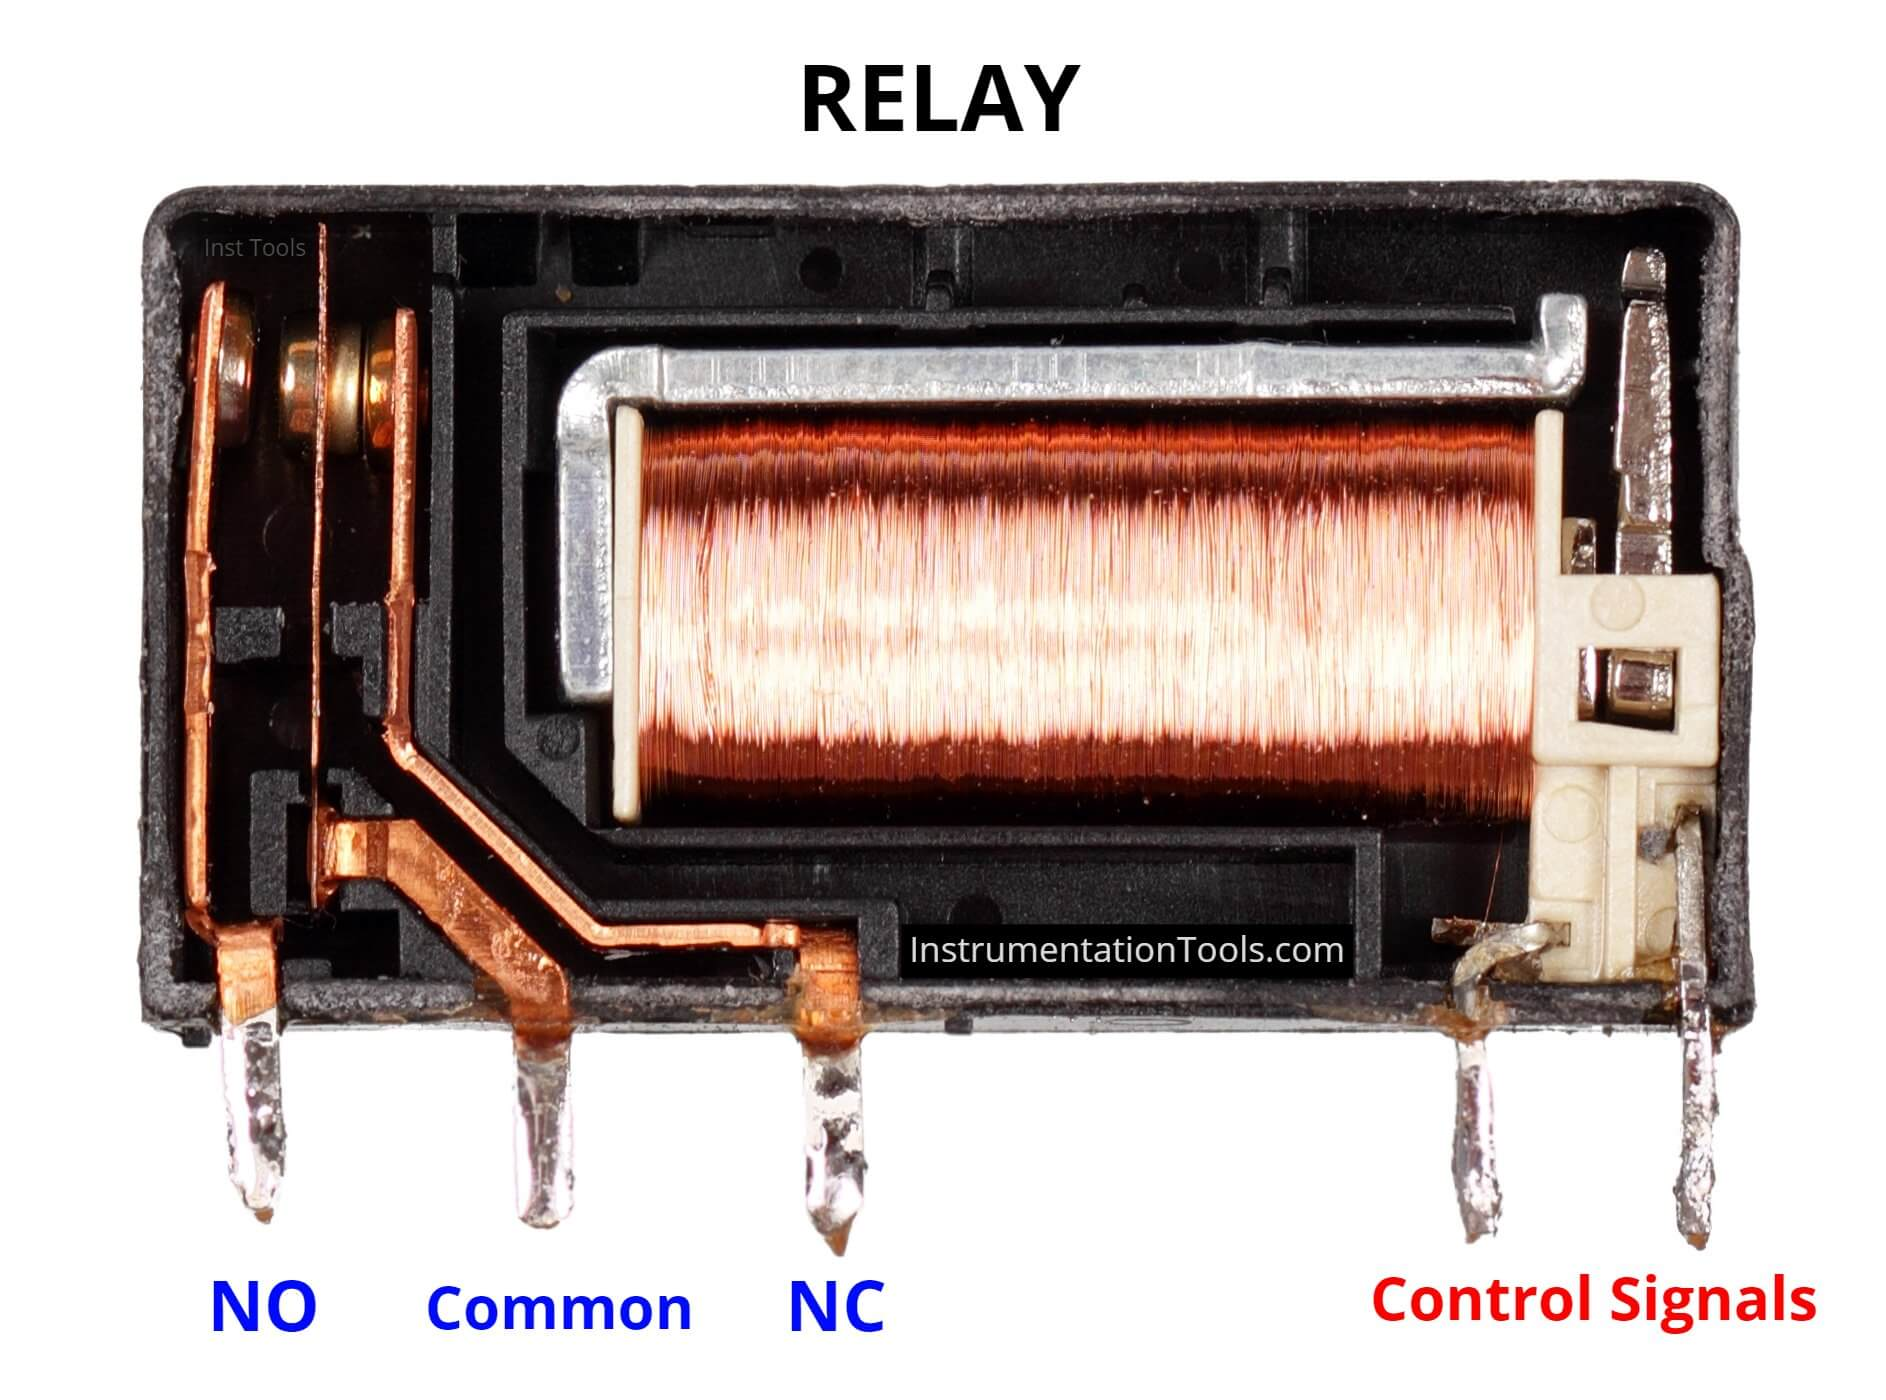 Basic Concepts of the Safety Relay